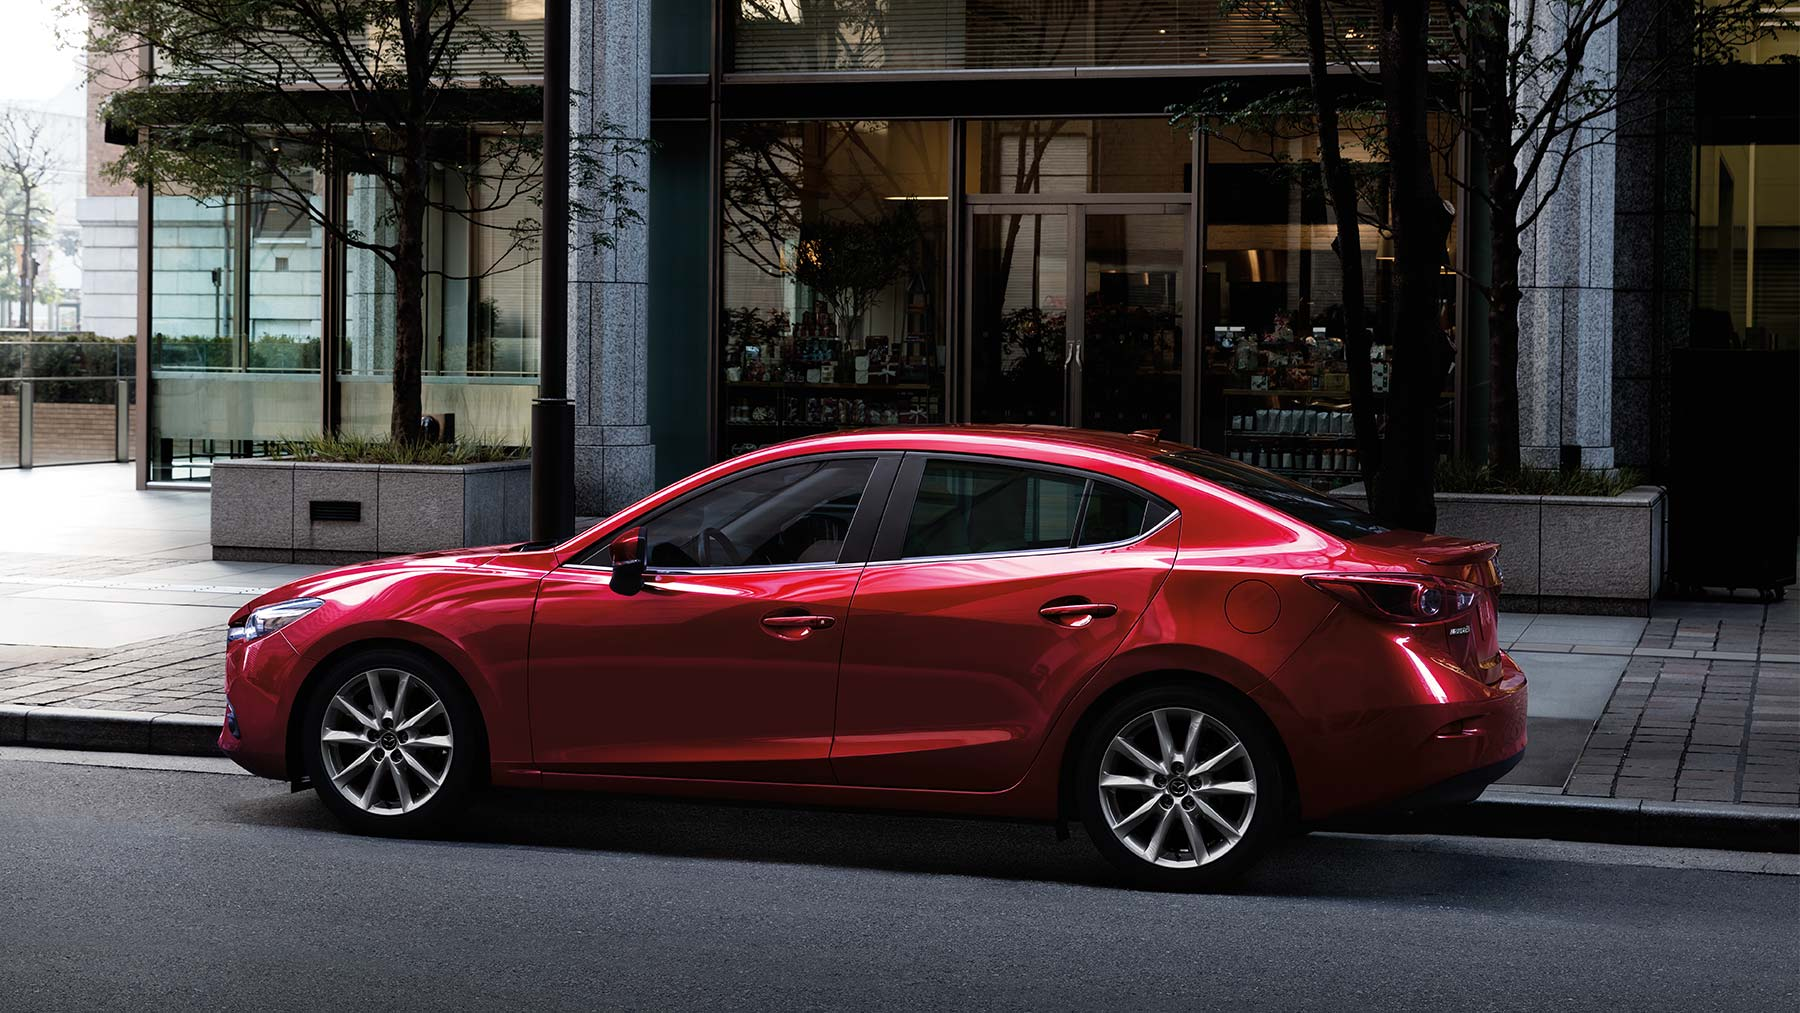 2019 Mazda 3 red color on road in city 4k hd wallpapers